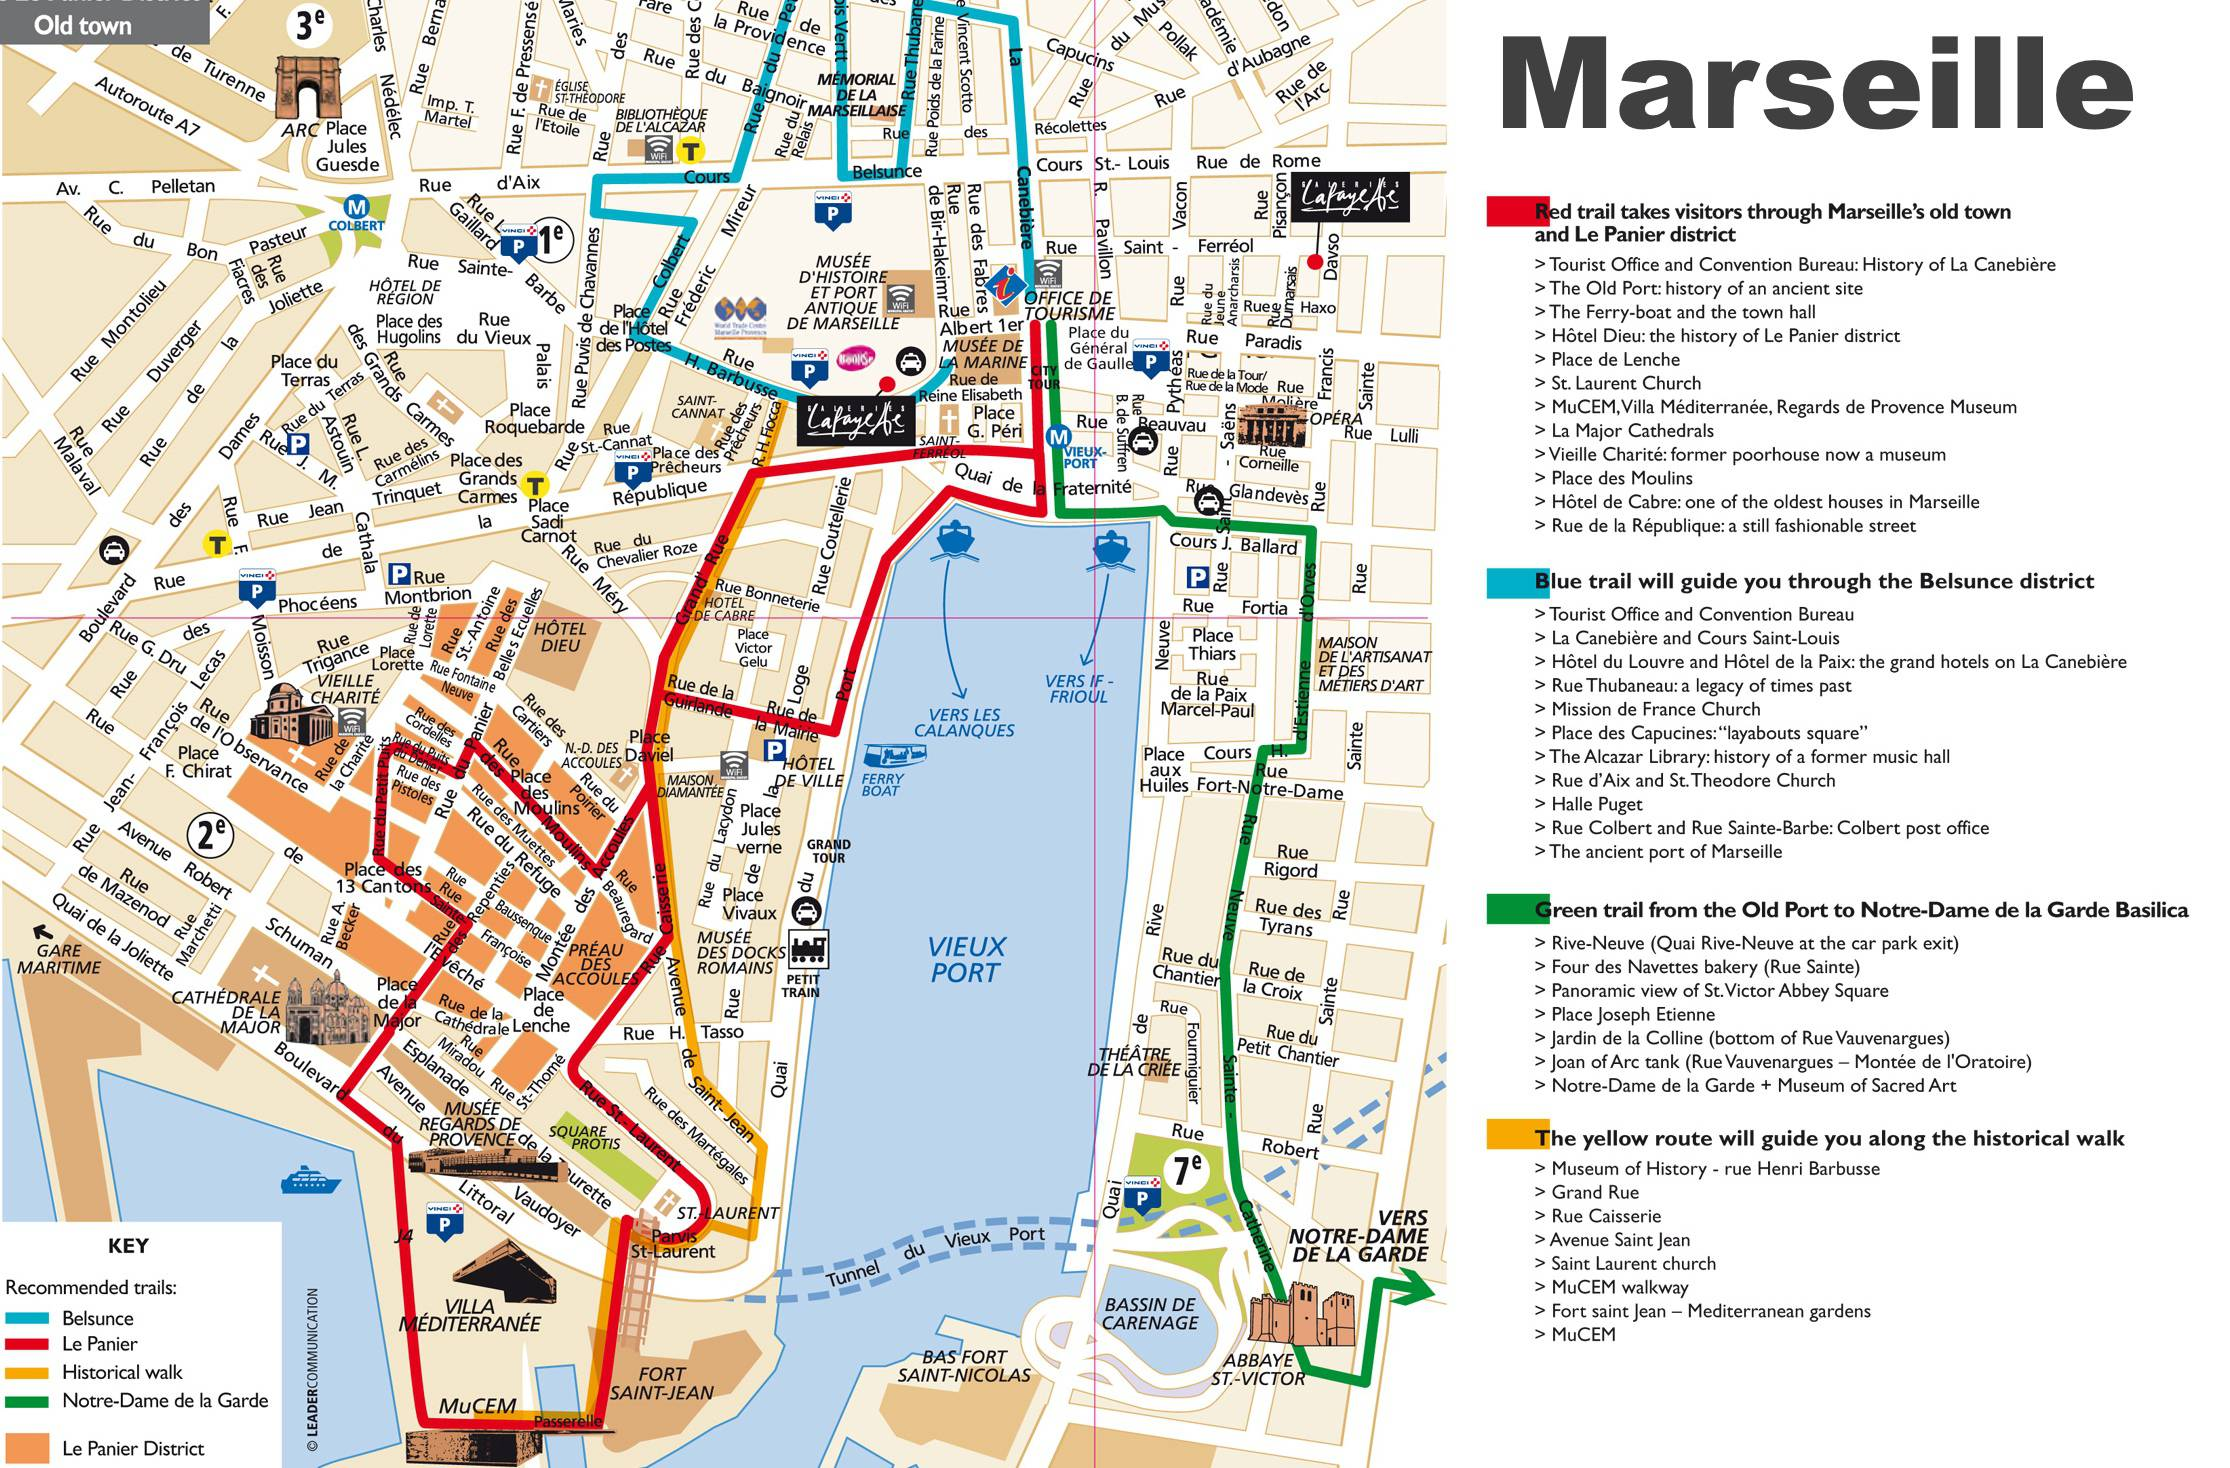 Carte des sites de tourisme à Marseille